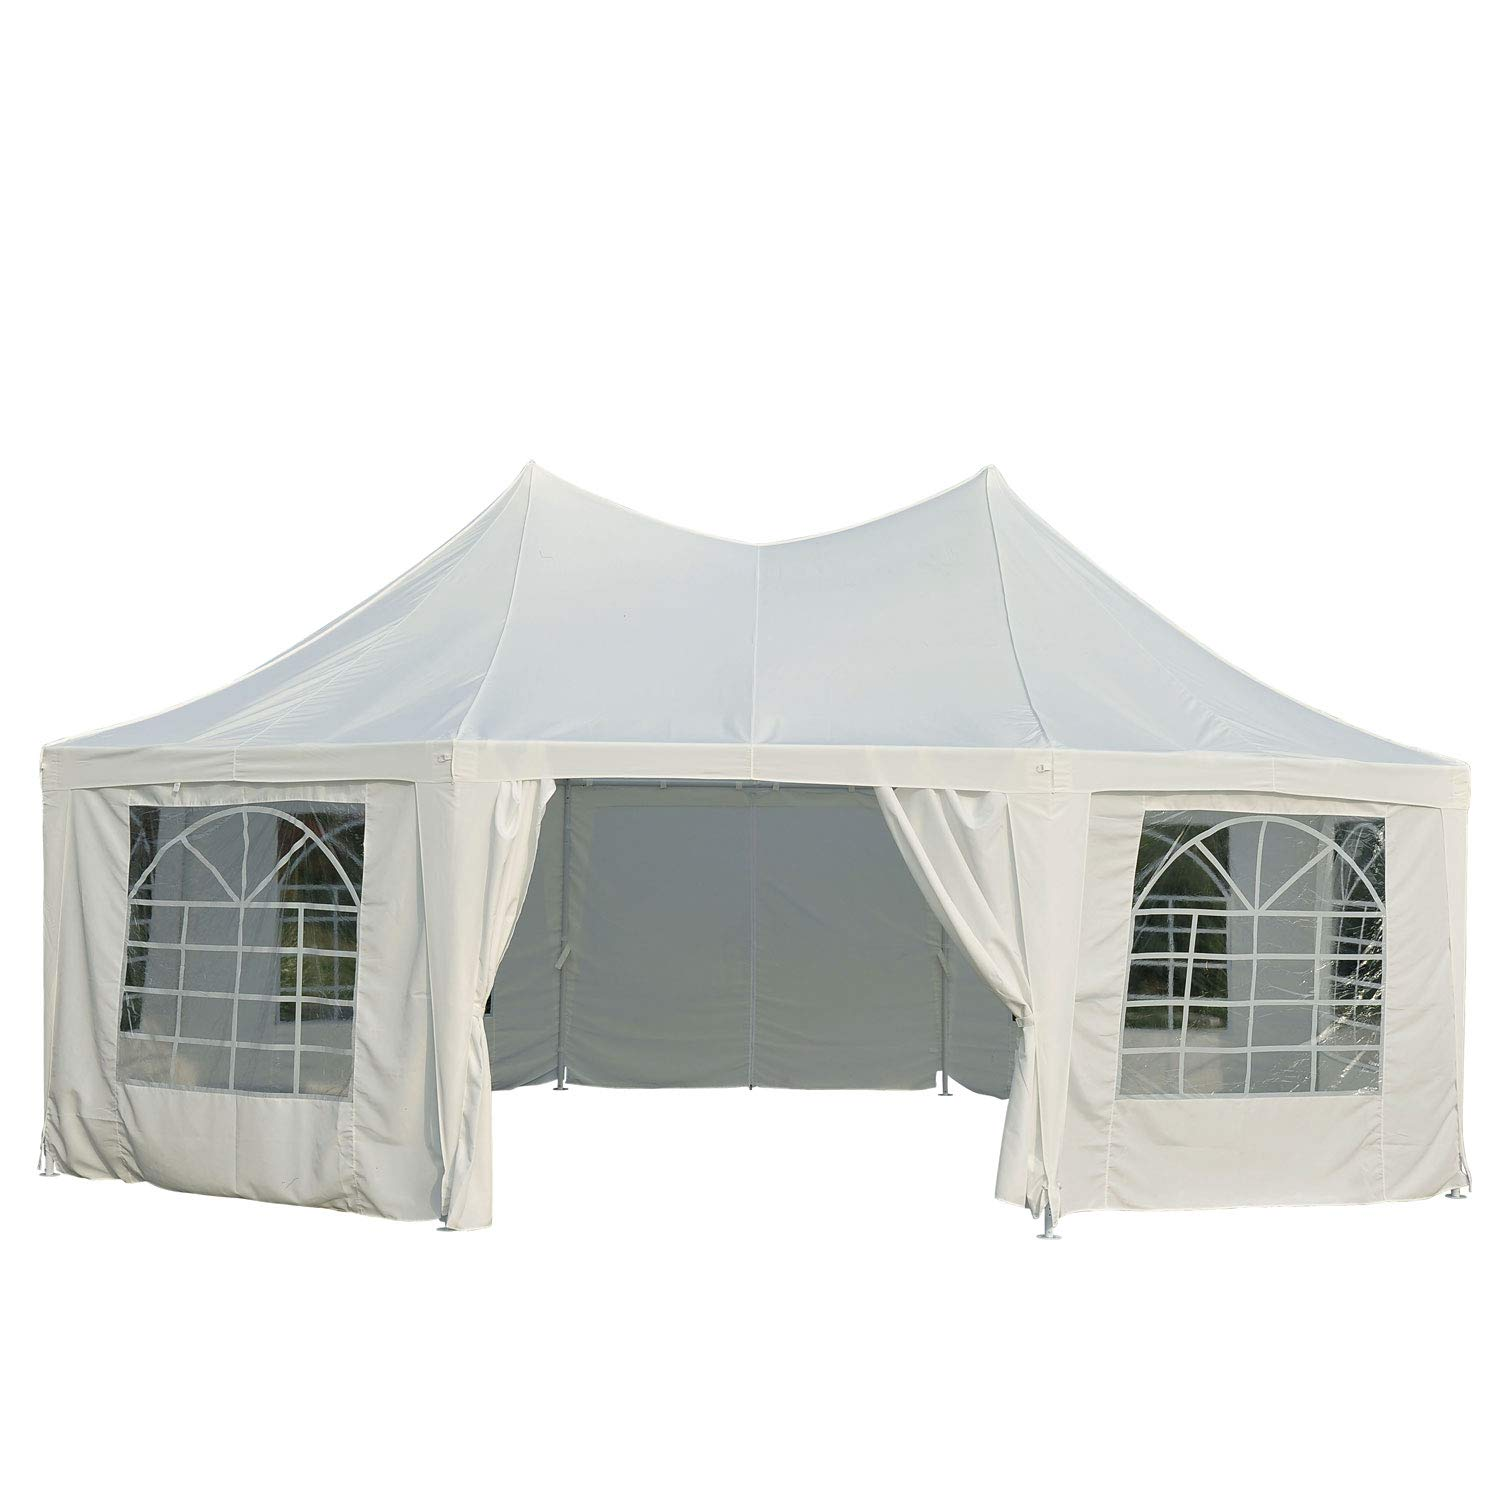 Outsunny 22 x 16 Large Octagon 8-Wall Party Canopy Gazebo Tent – White